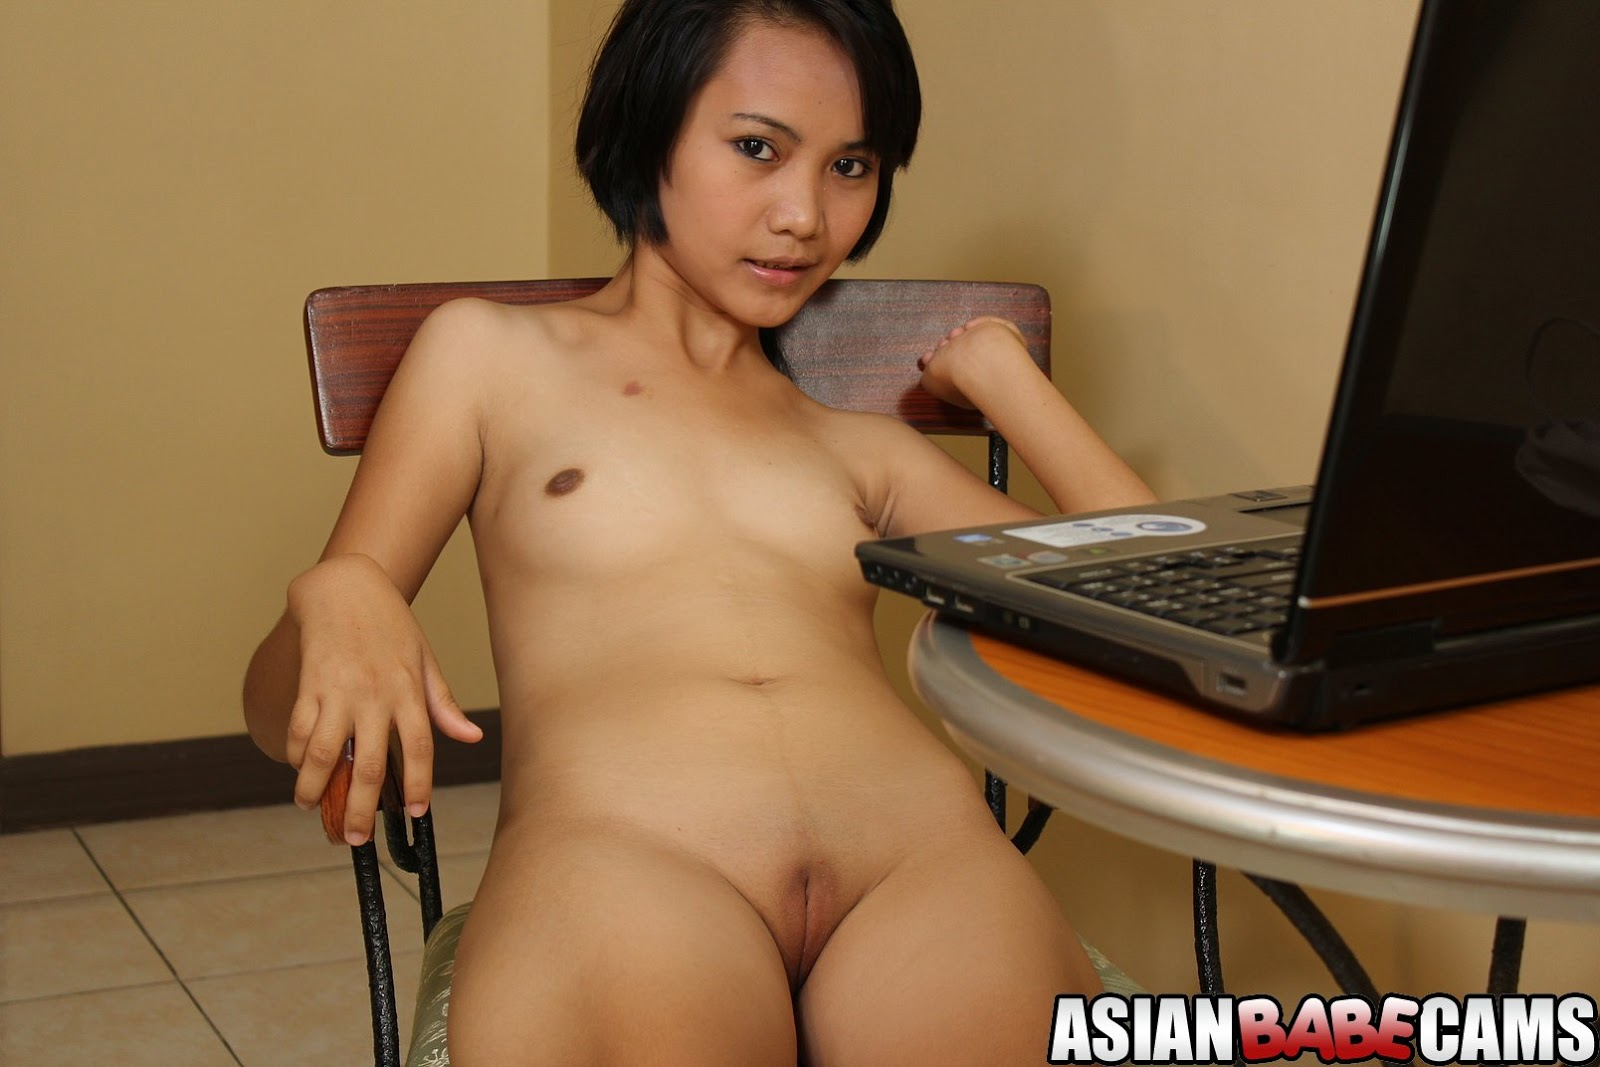 Thai girl sex nude star